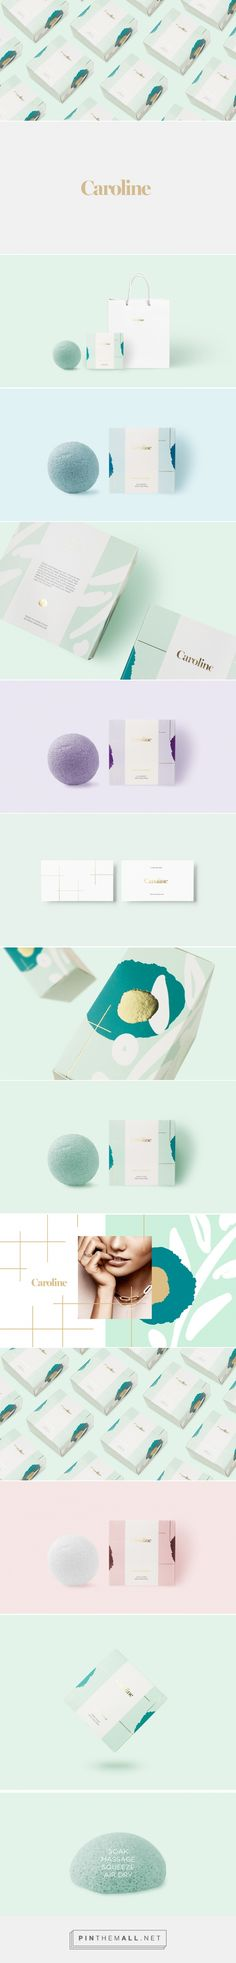 Caroline Skincare Branding and Packaging by Alaa Amra | Fivestar Branding Agency – Design and Branding Agency & Curated Inspiration Gallery